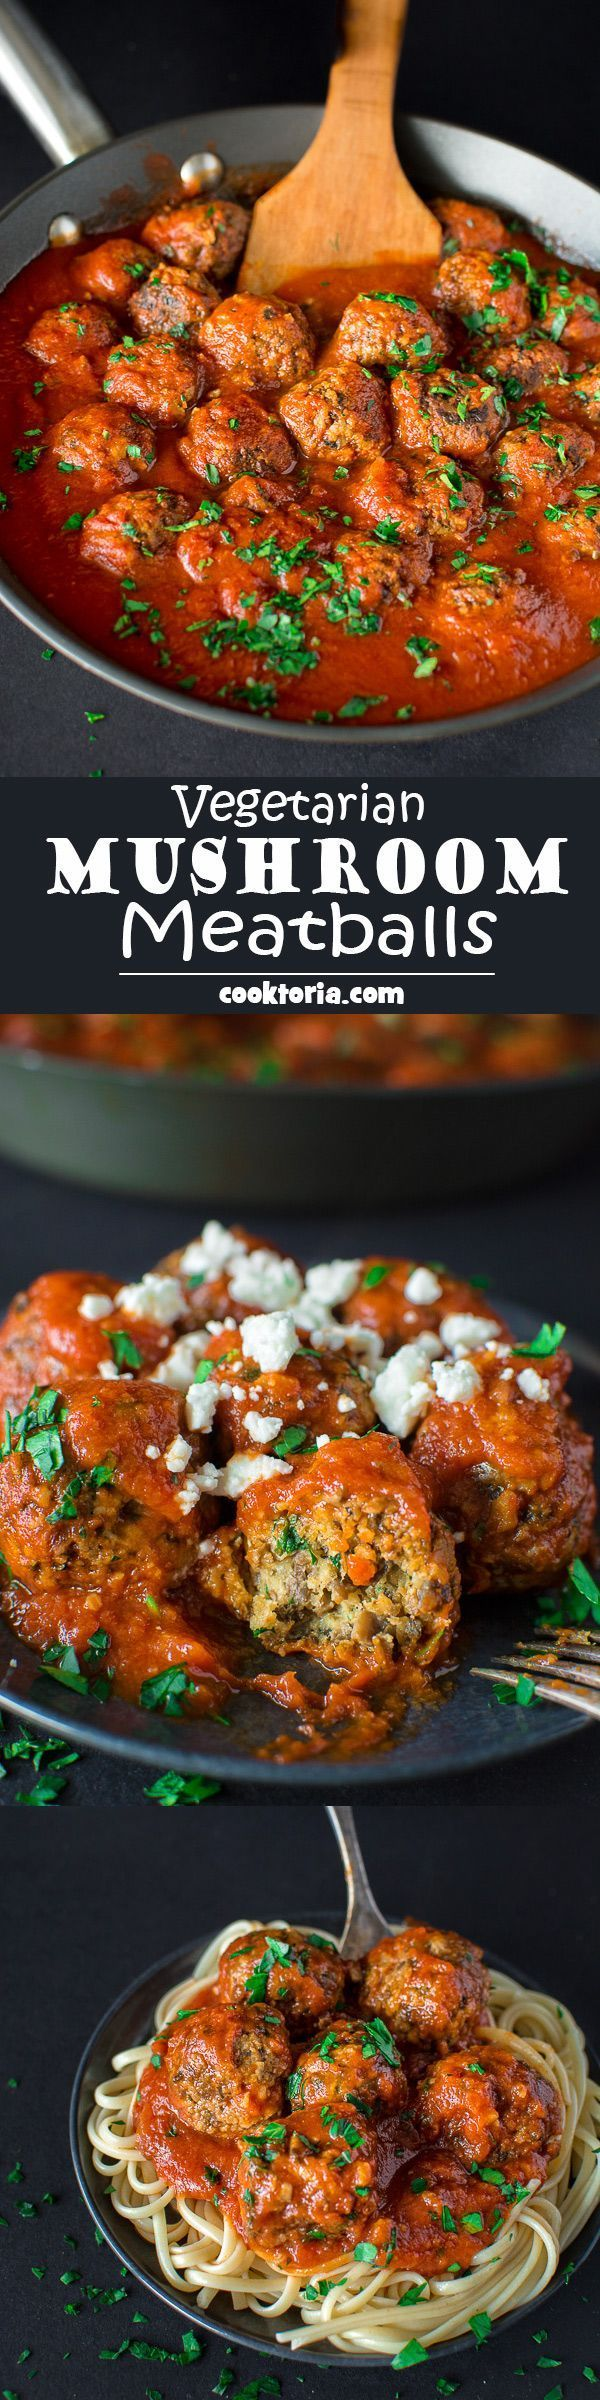 These soft and moist Mushroom Meatballs are simple to prepare and make a perfect vegetarian dinner!❤ http://COOKTORIA.COM